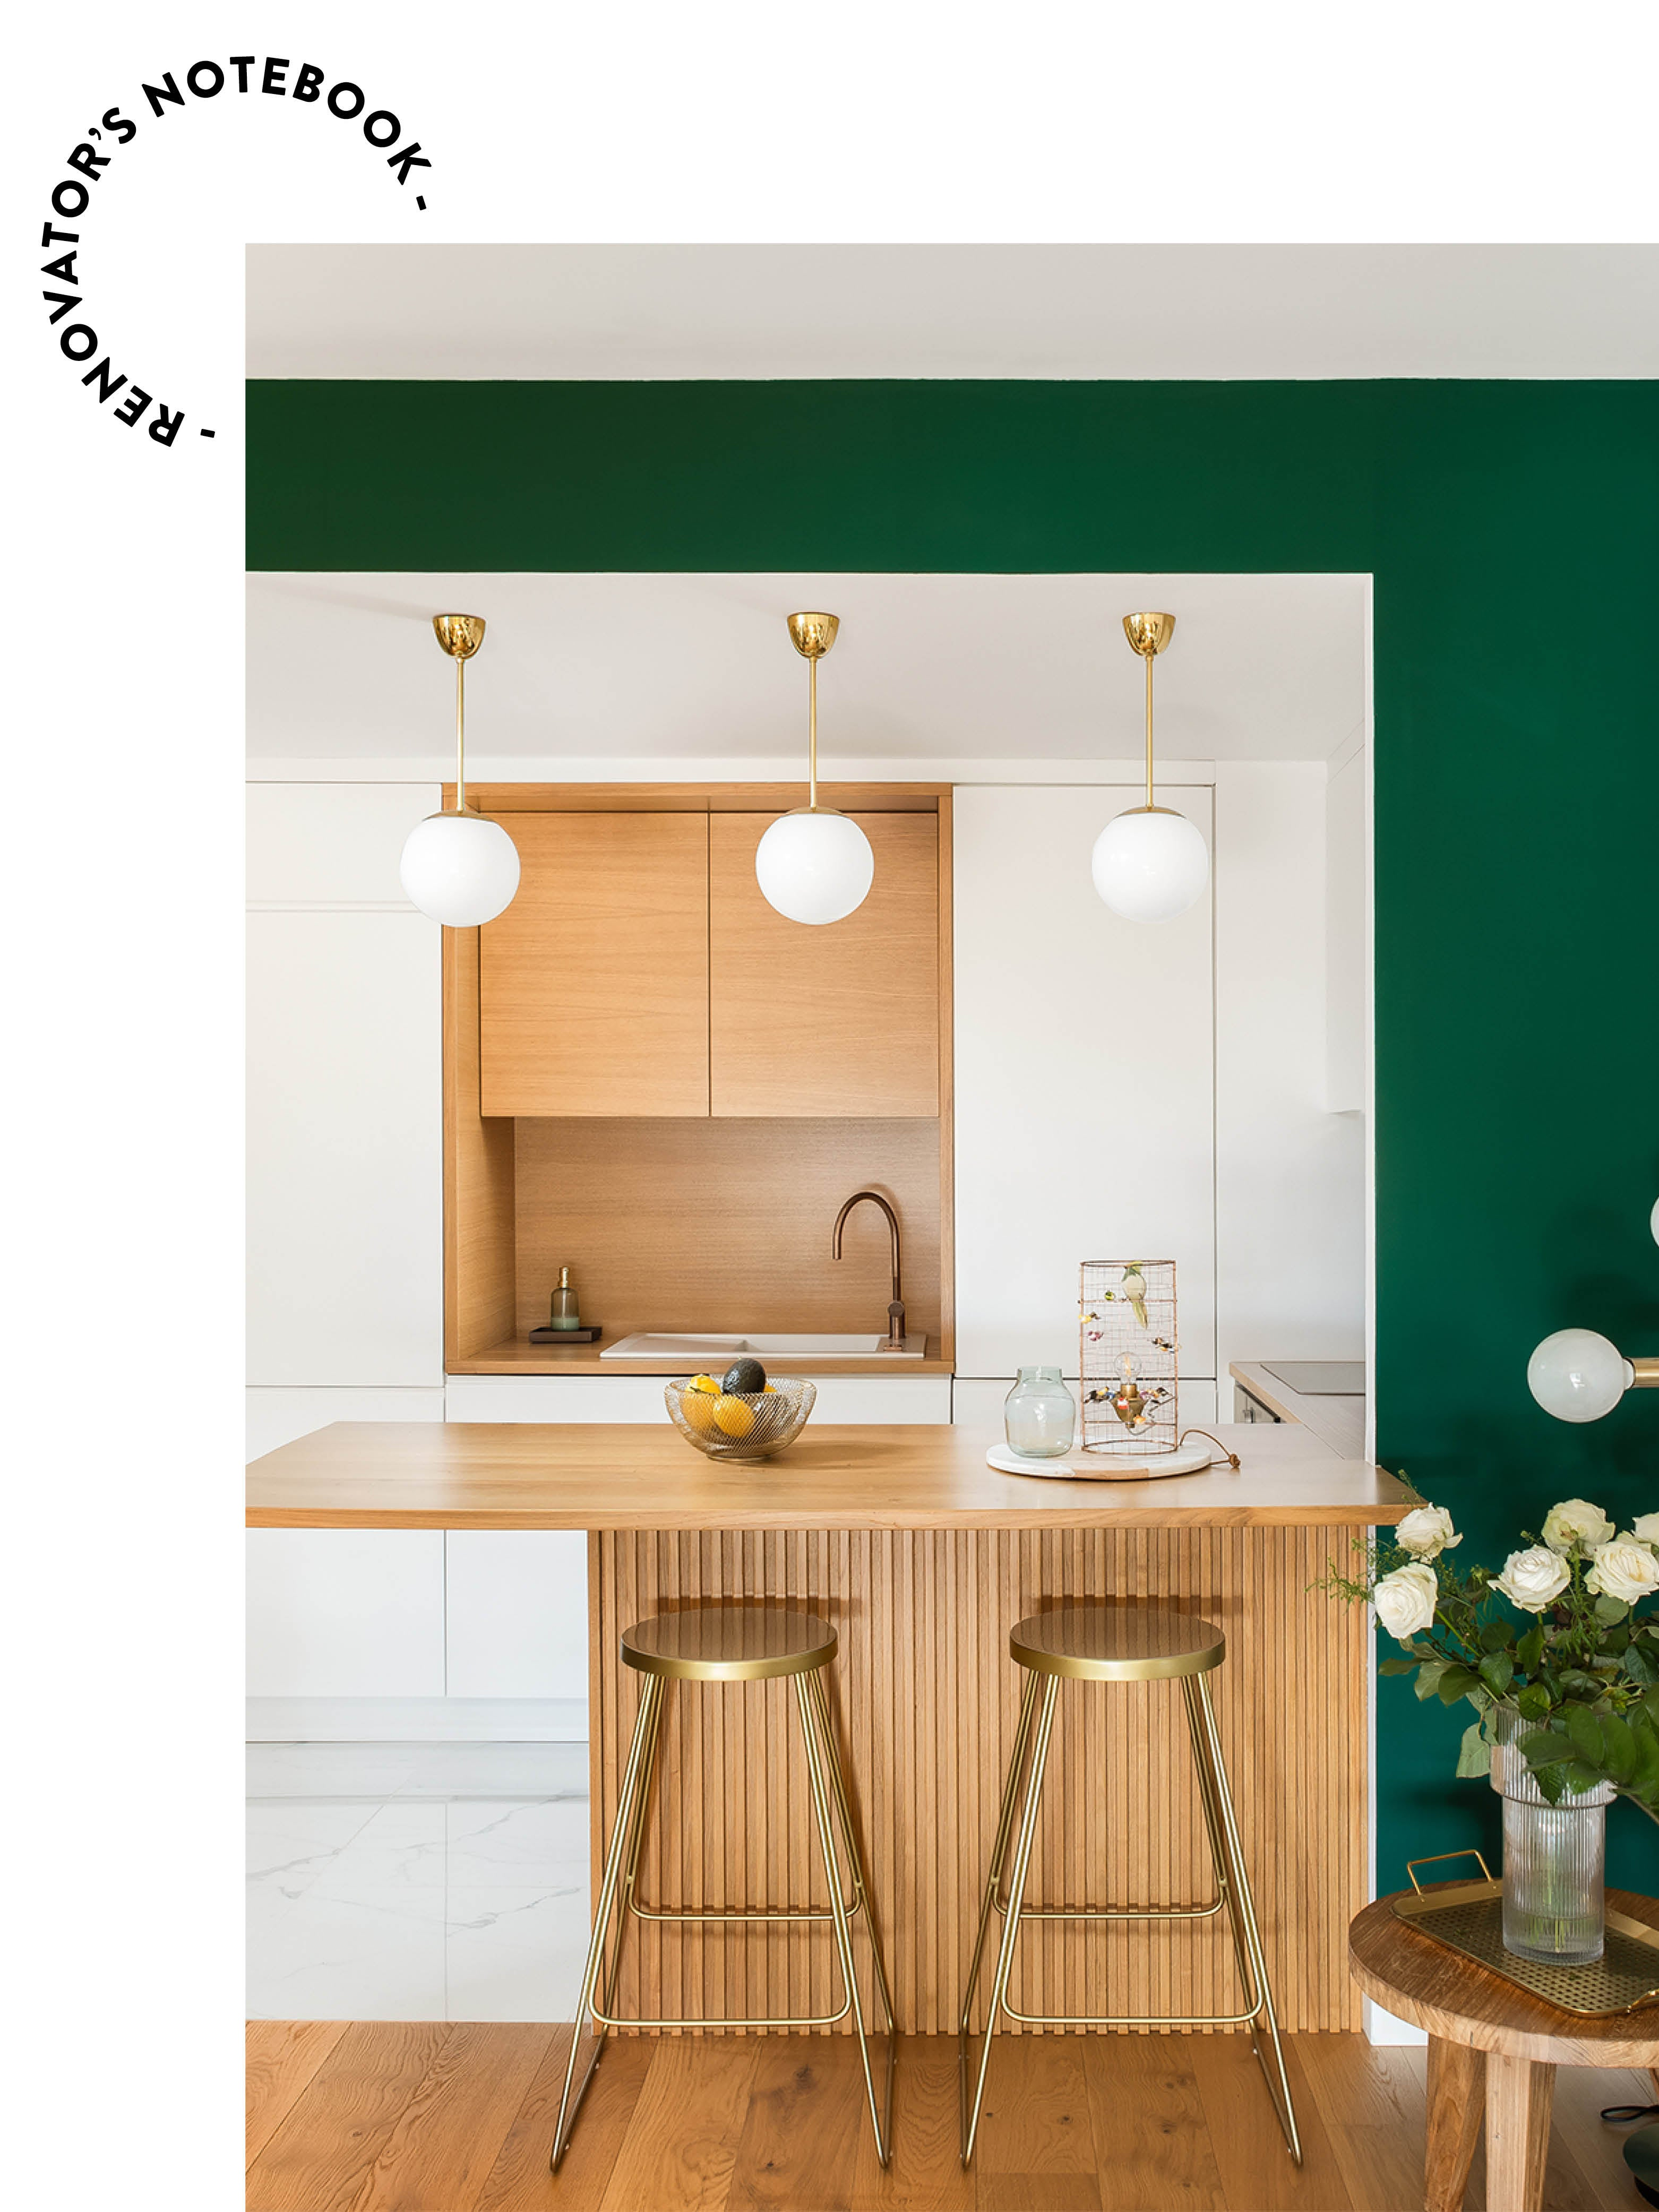 green and white kitchen with pendant lights over island